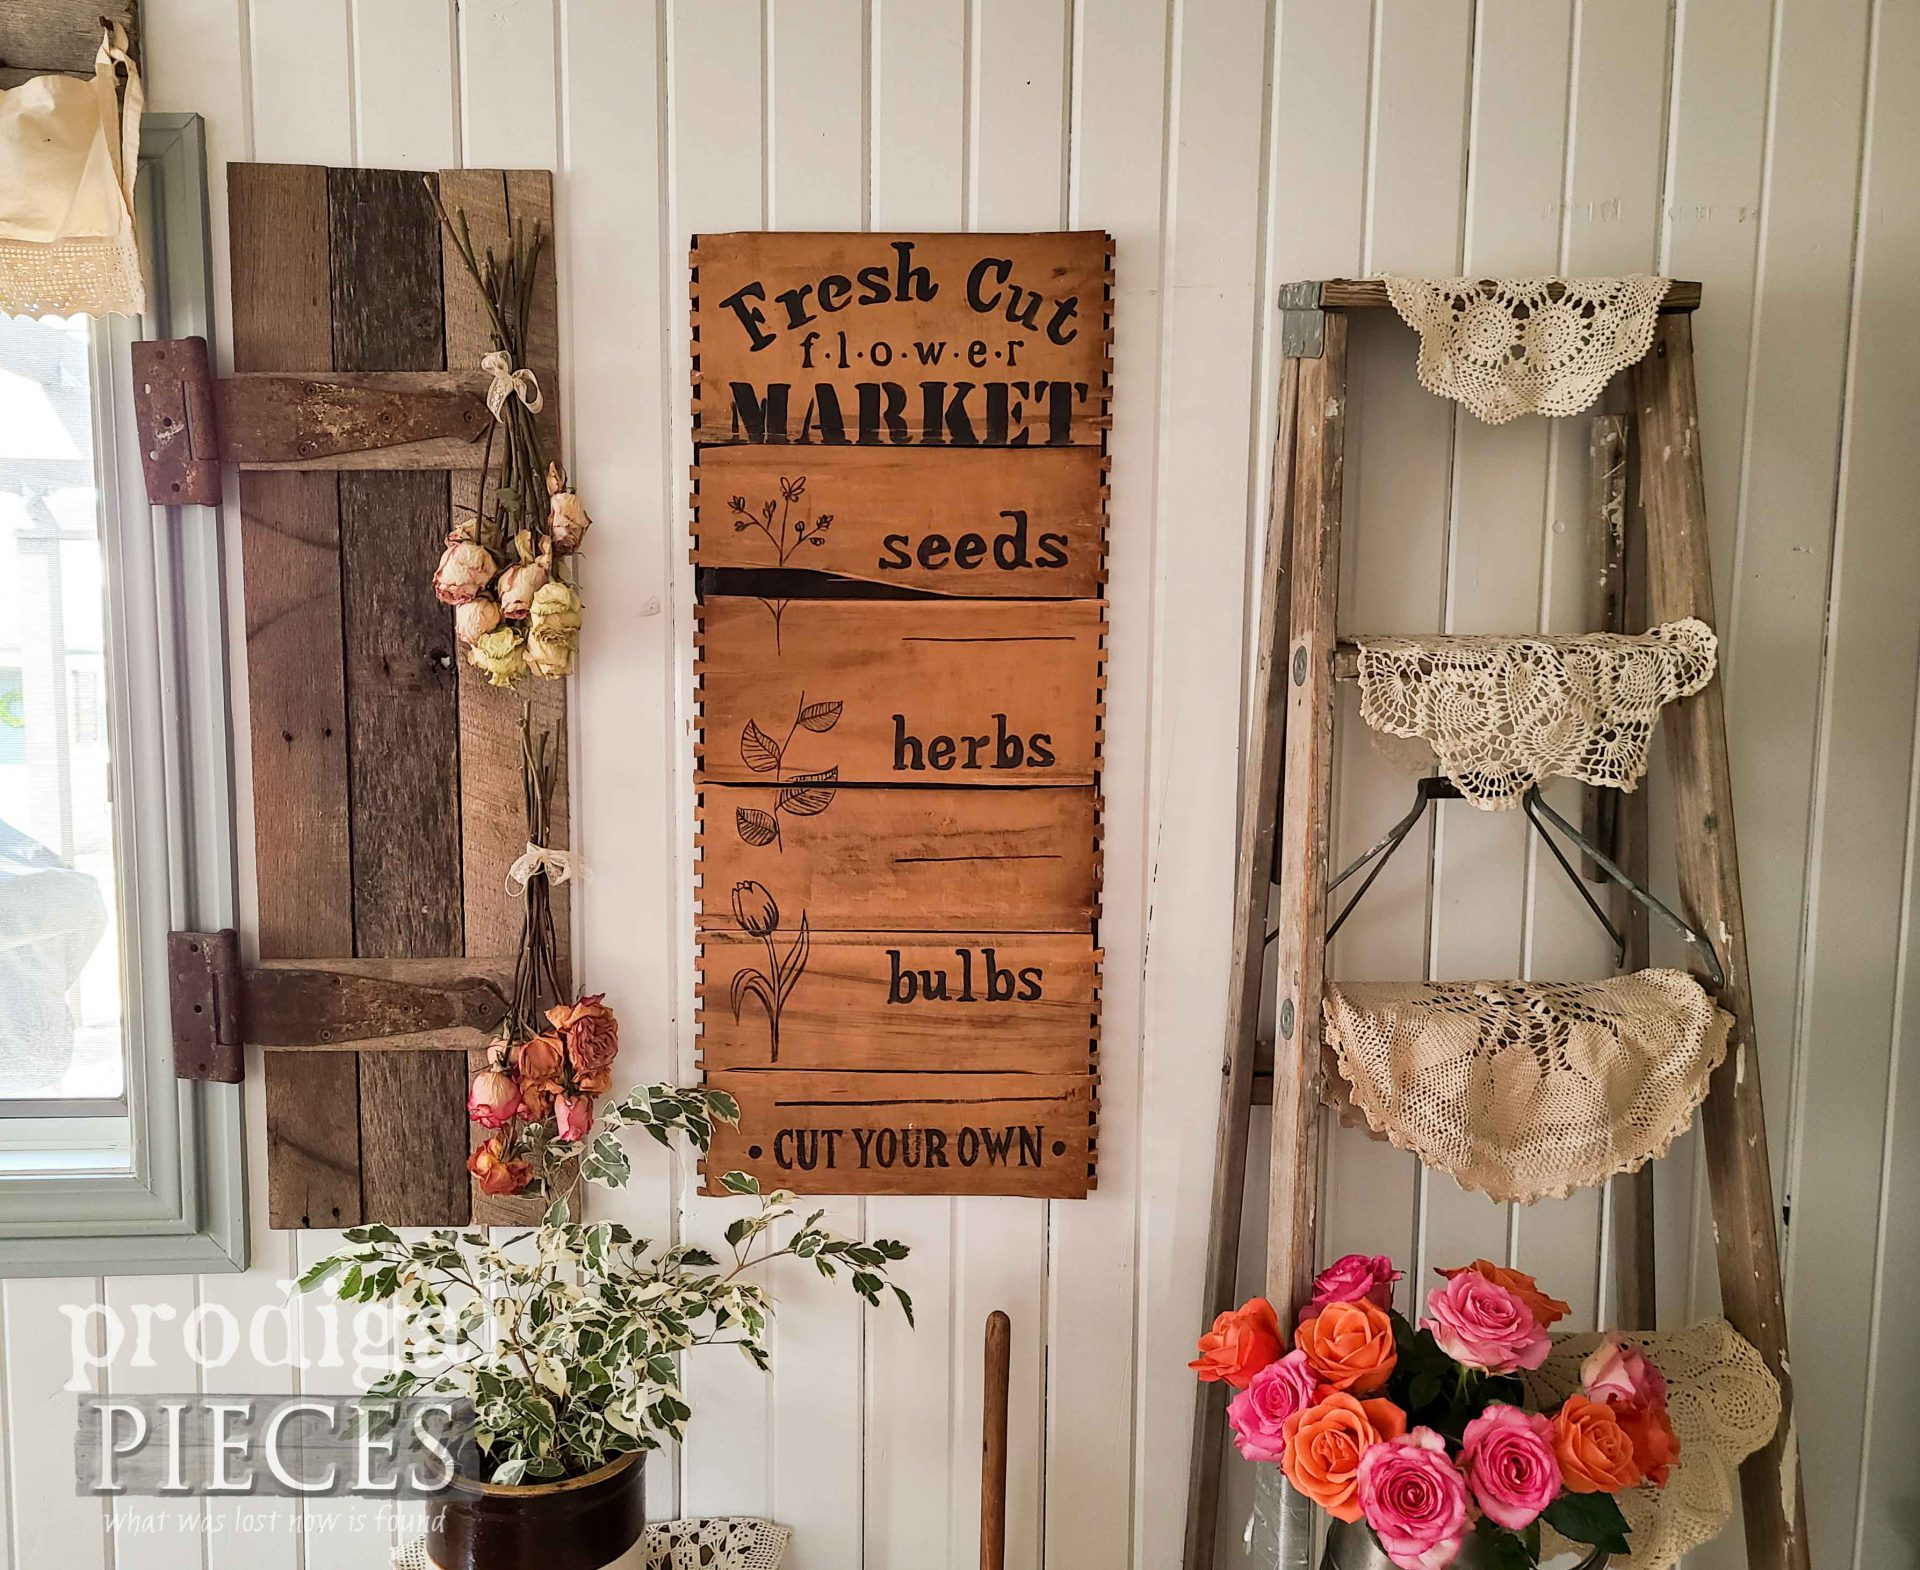 Upcycled Broken Drawers Art into Spring Decor by Larissa of Prodigal Pieces | prodigalpieces.com #prodigalpieces #farmhouse #diy #spring #home #homedecor